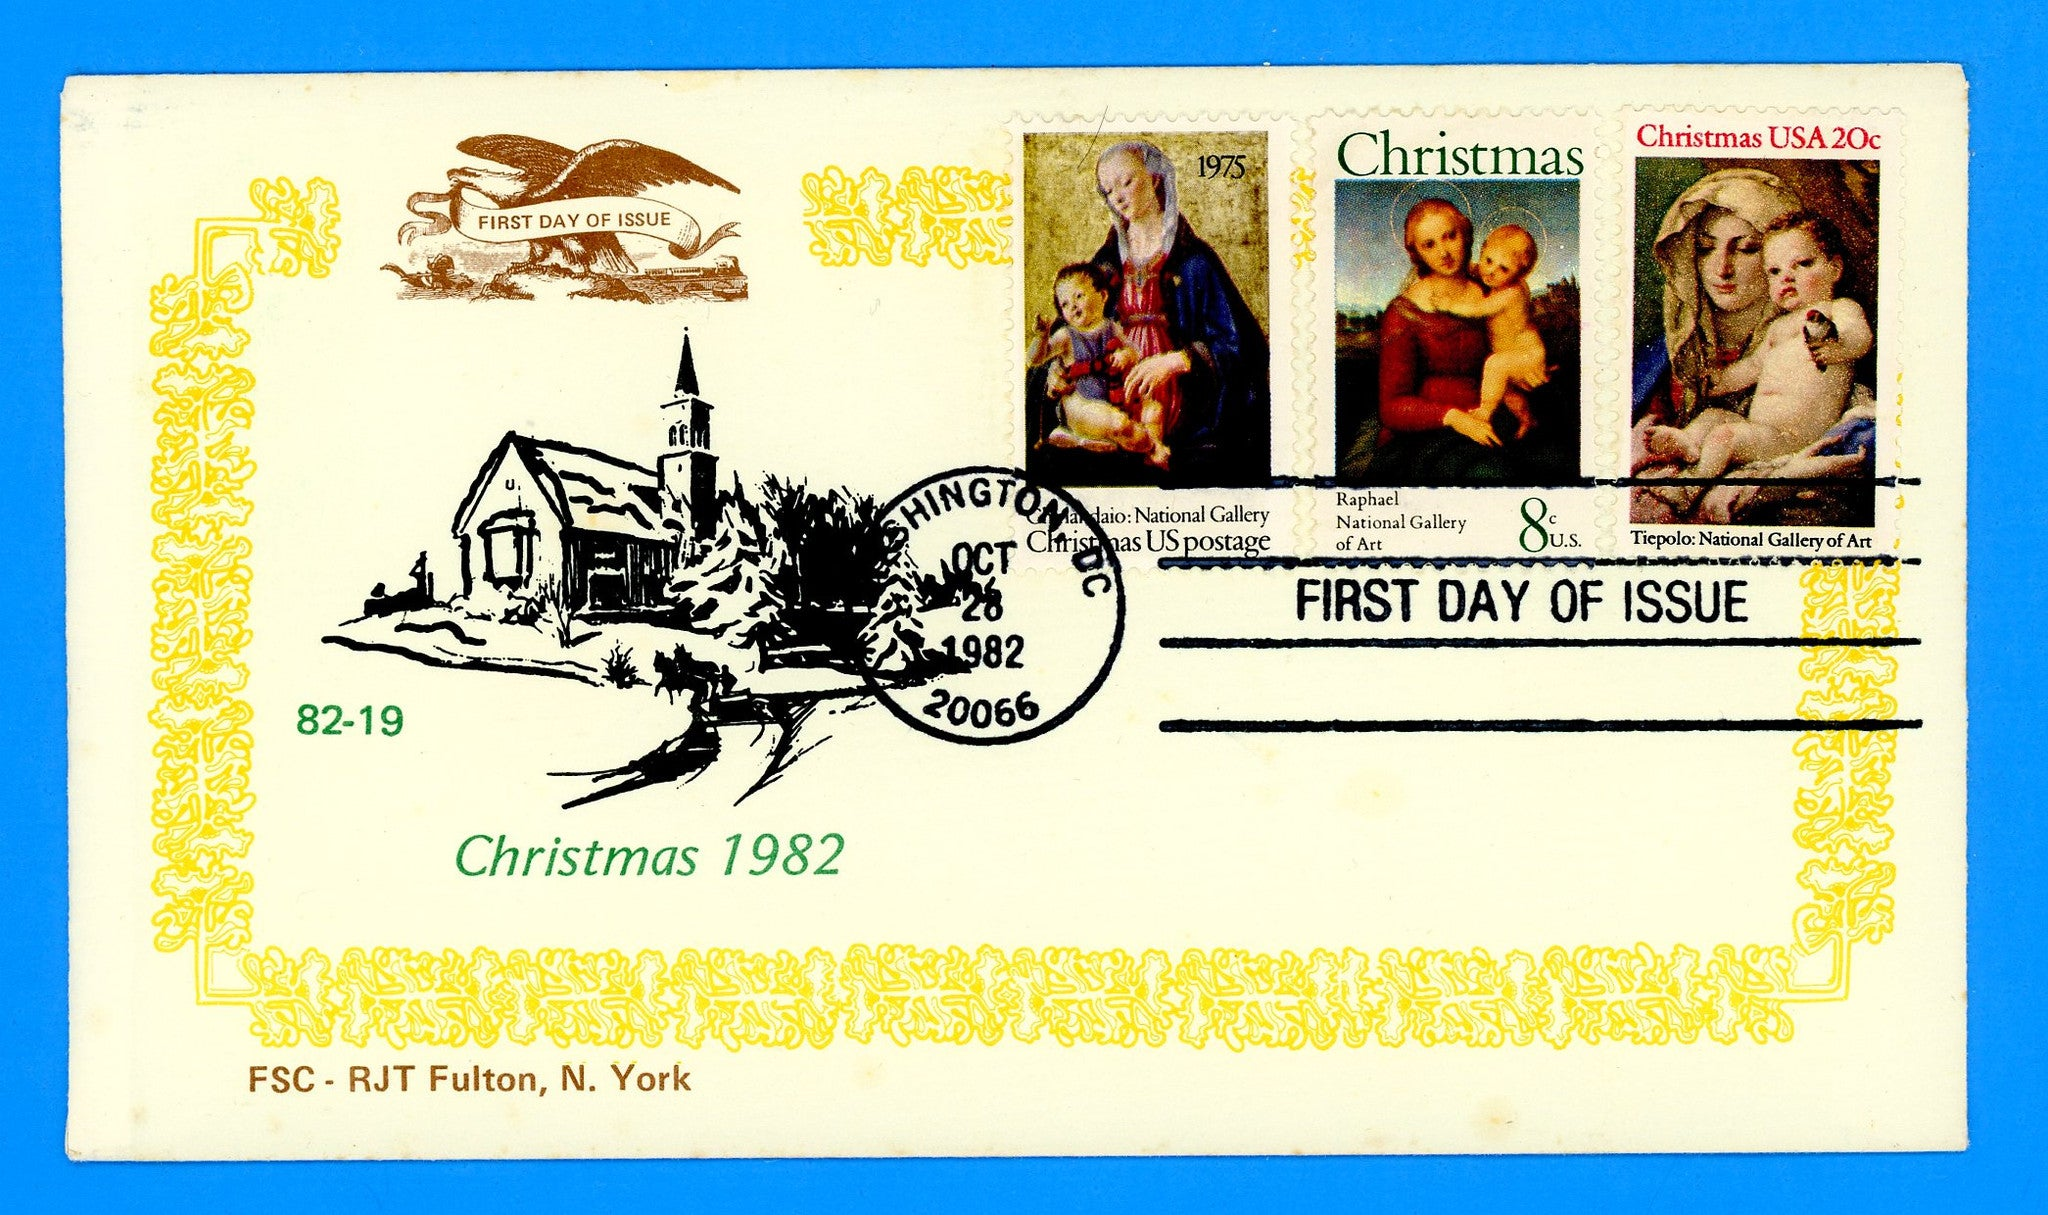 Scott 2026 Christmas Madonna & Child 1982 Combo First Day Cover by RJT Fulton